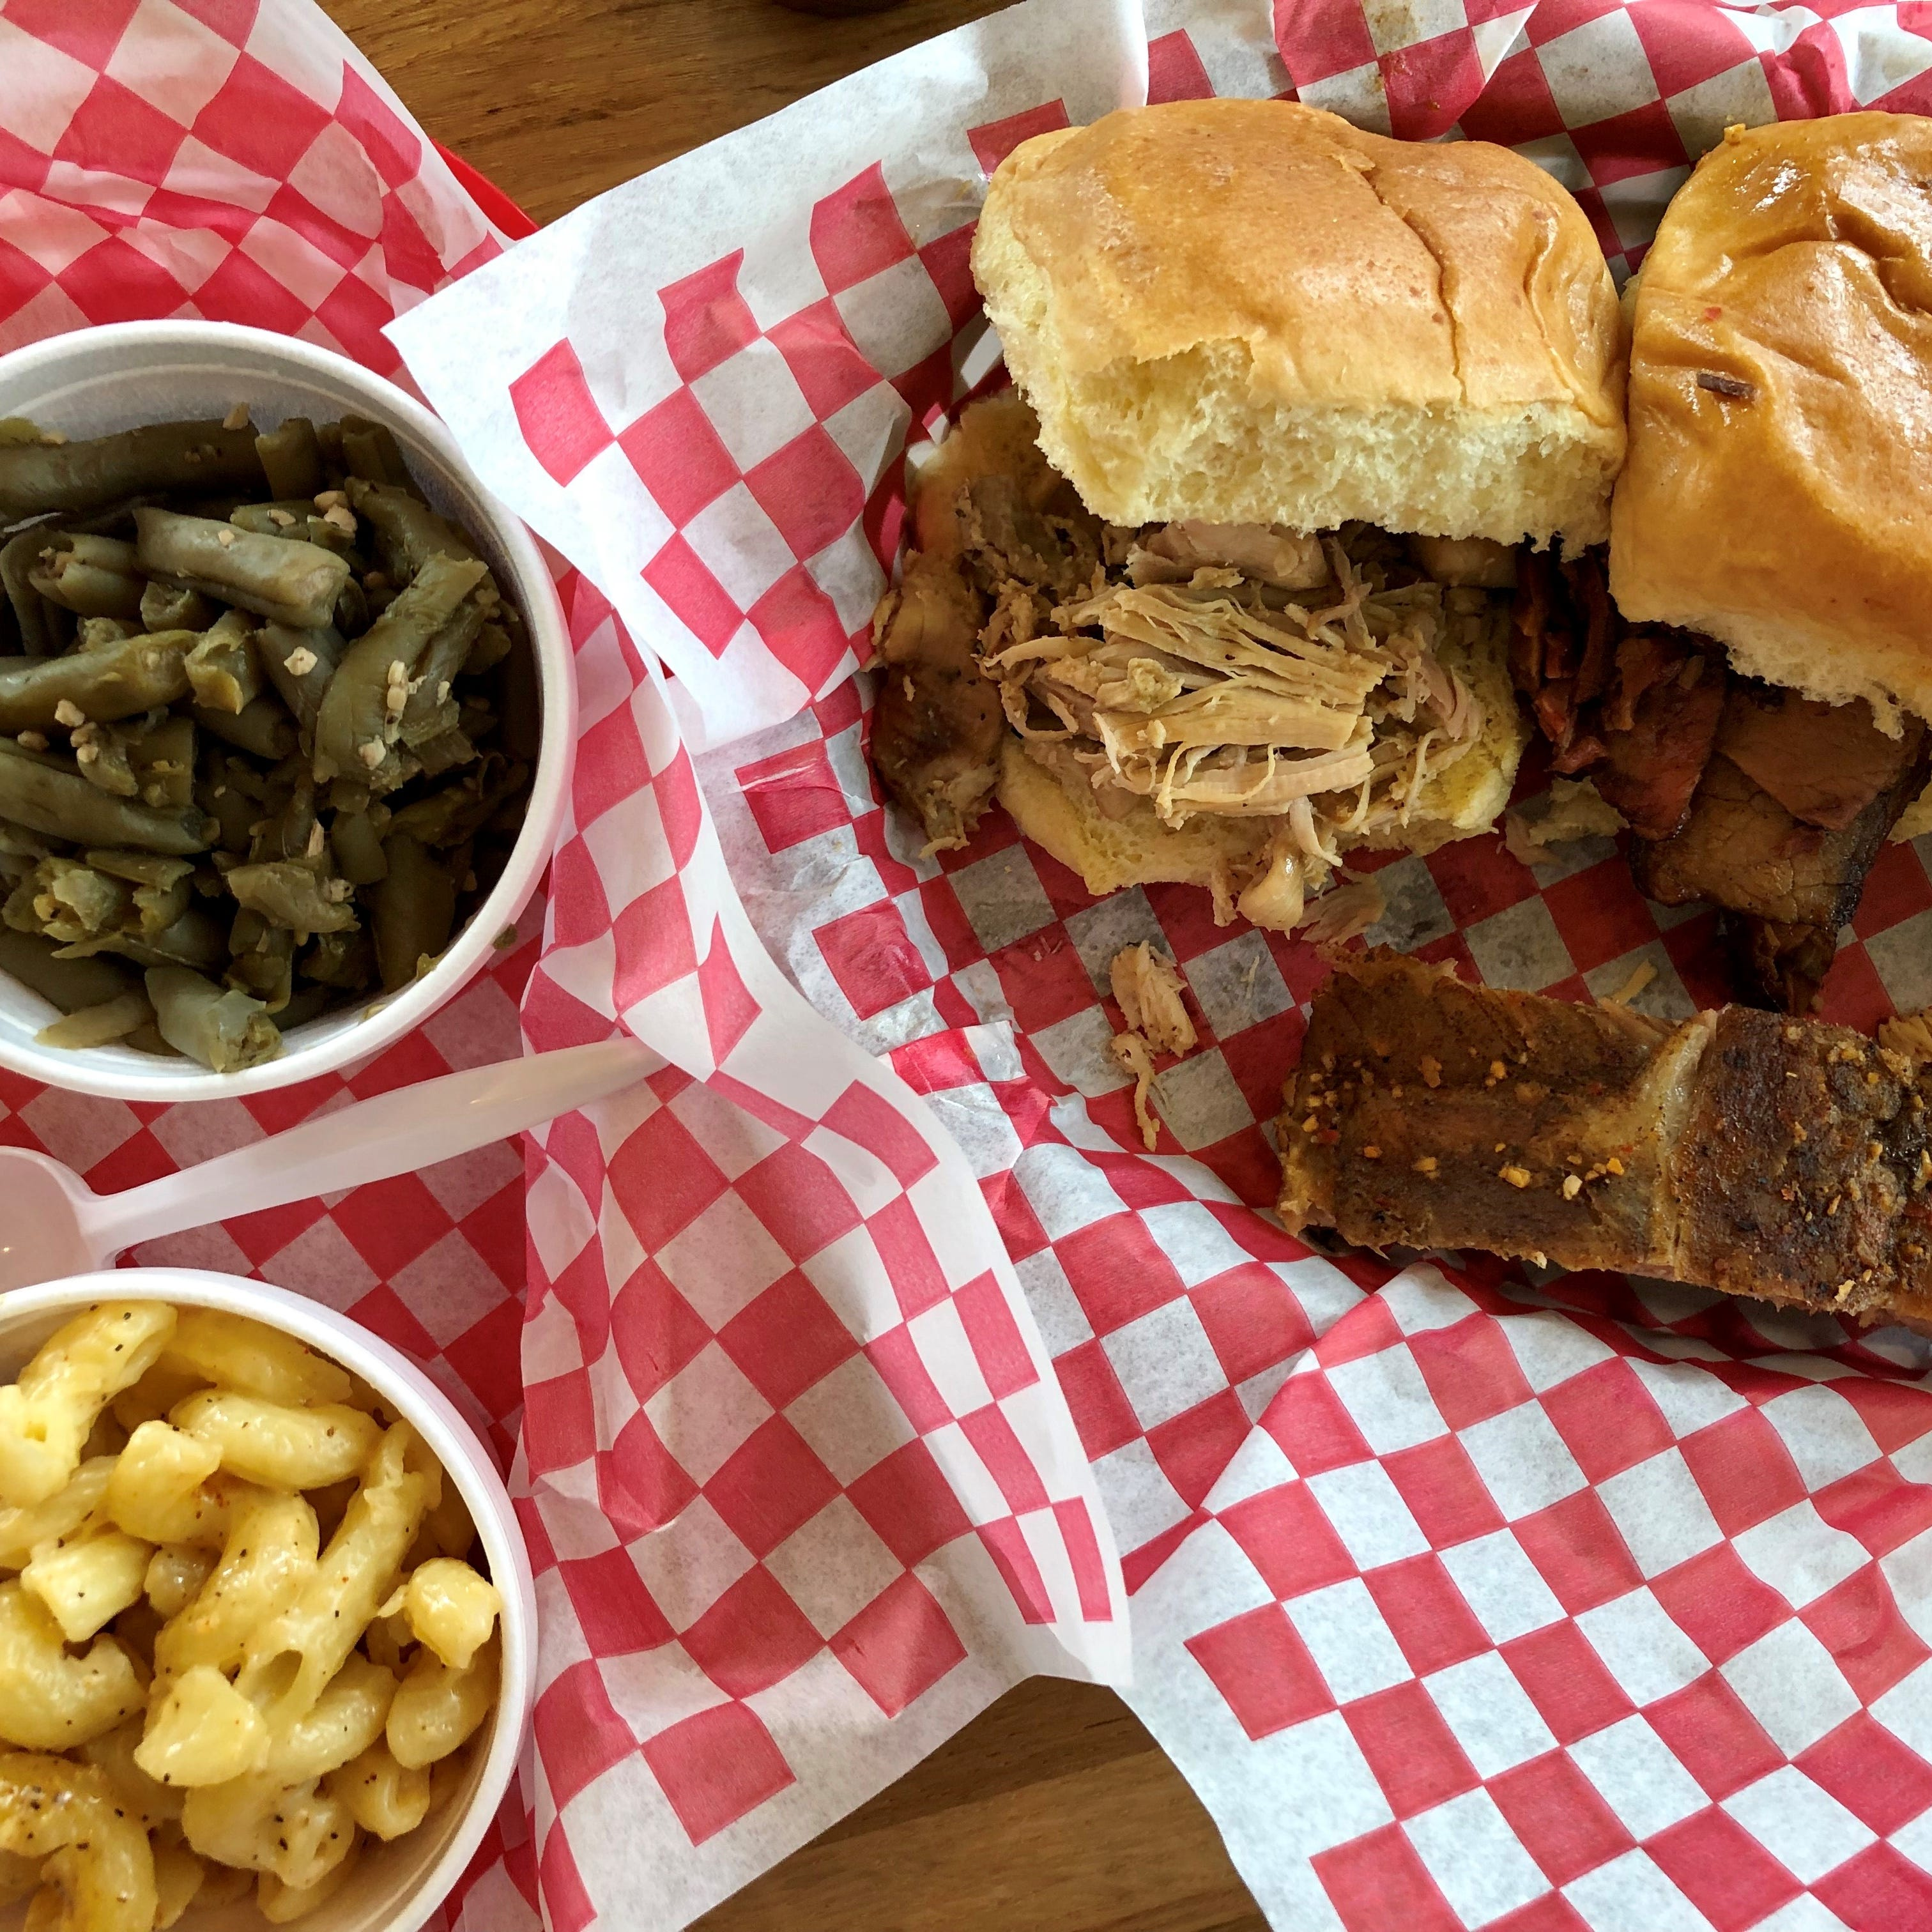 Restaurant review: Naples' Nawty Hogg BBQ is smoky, creative and surprisingly delicious